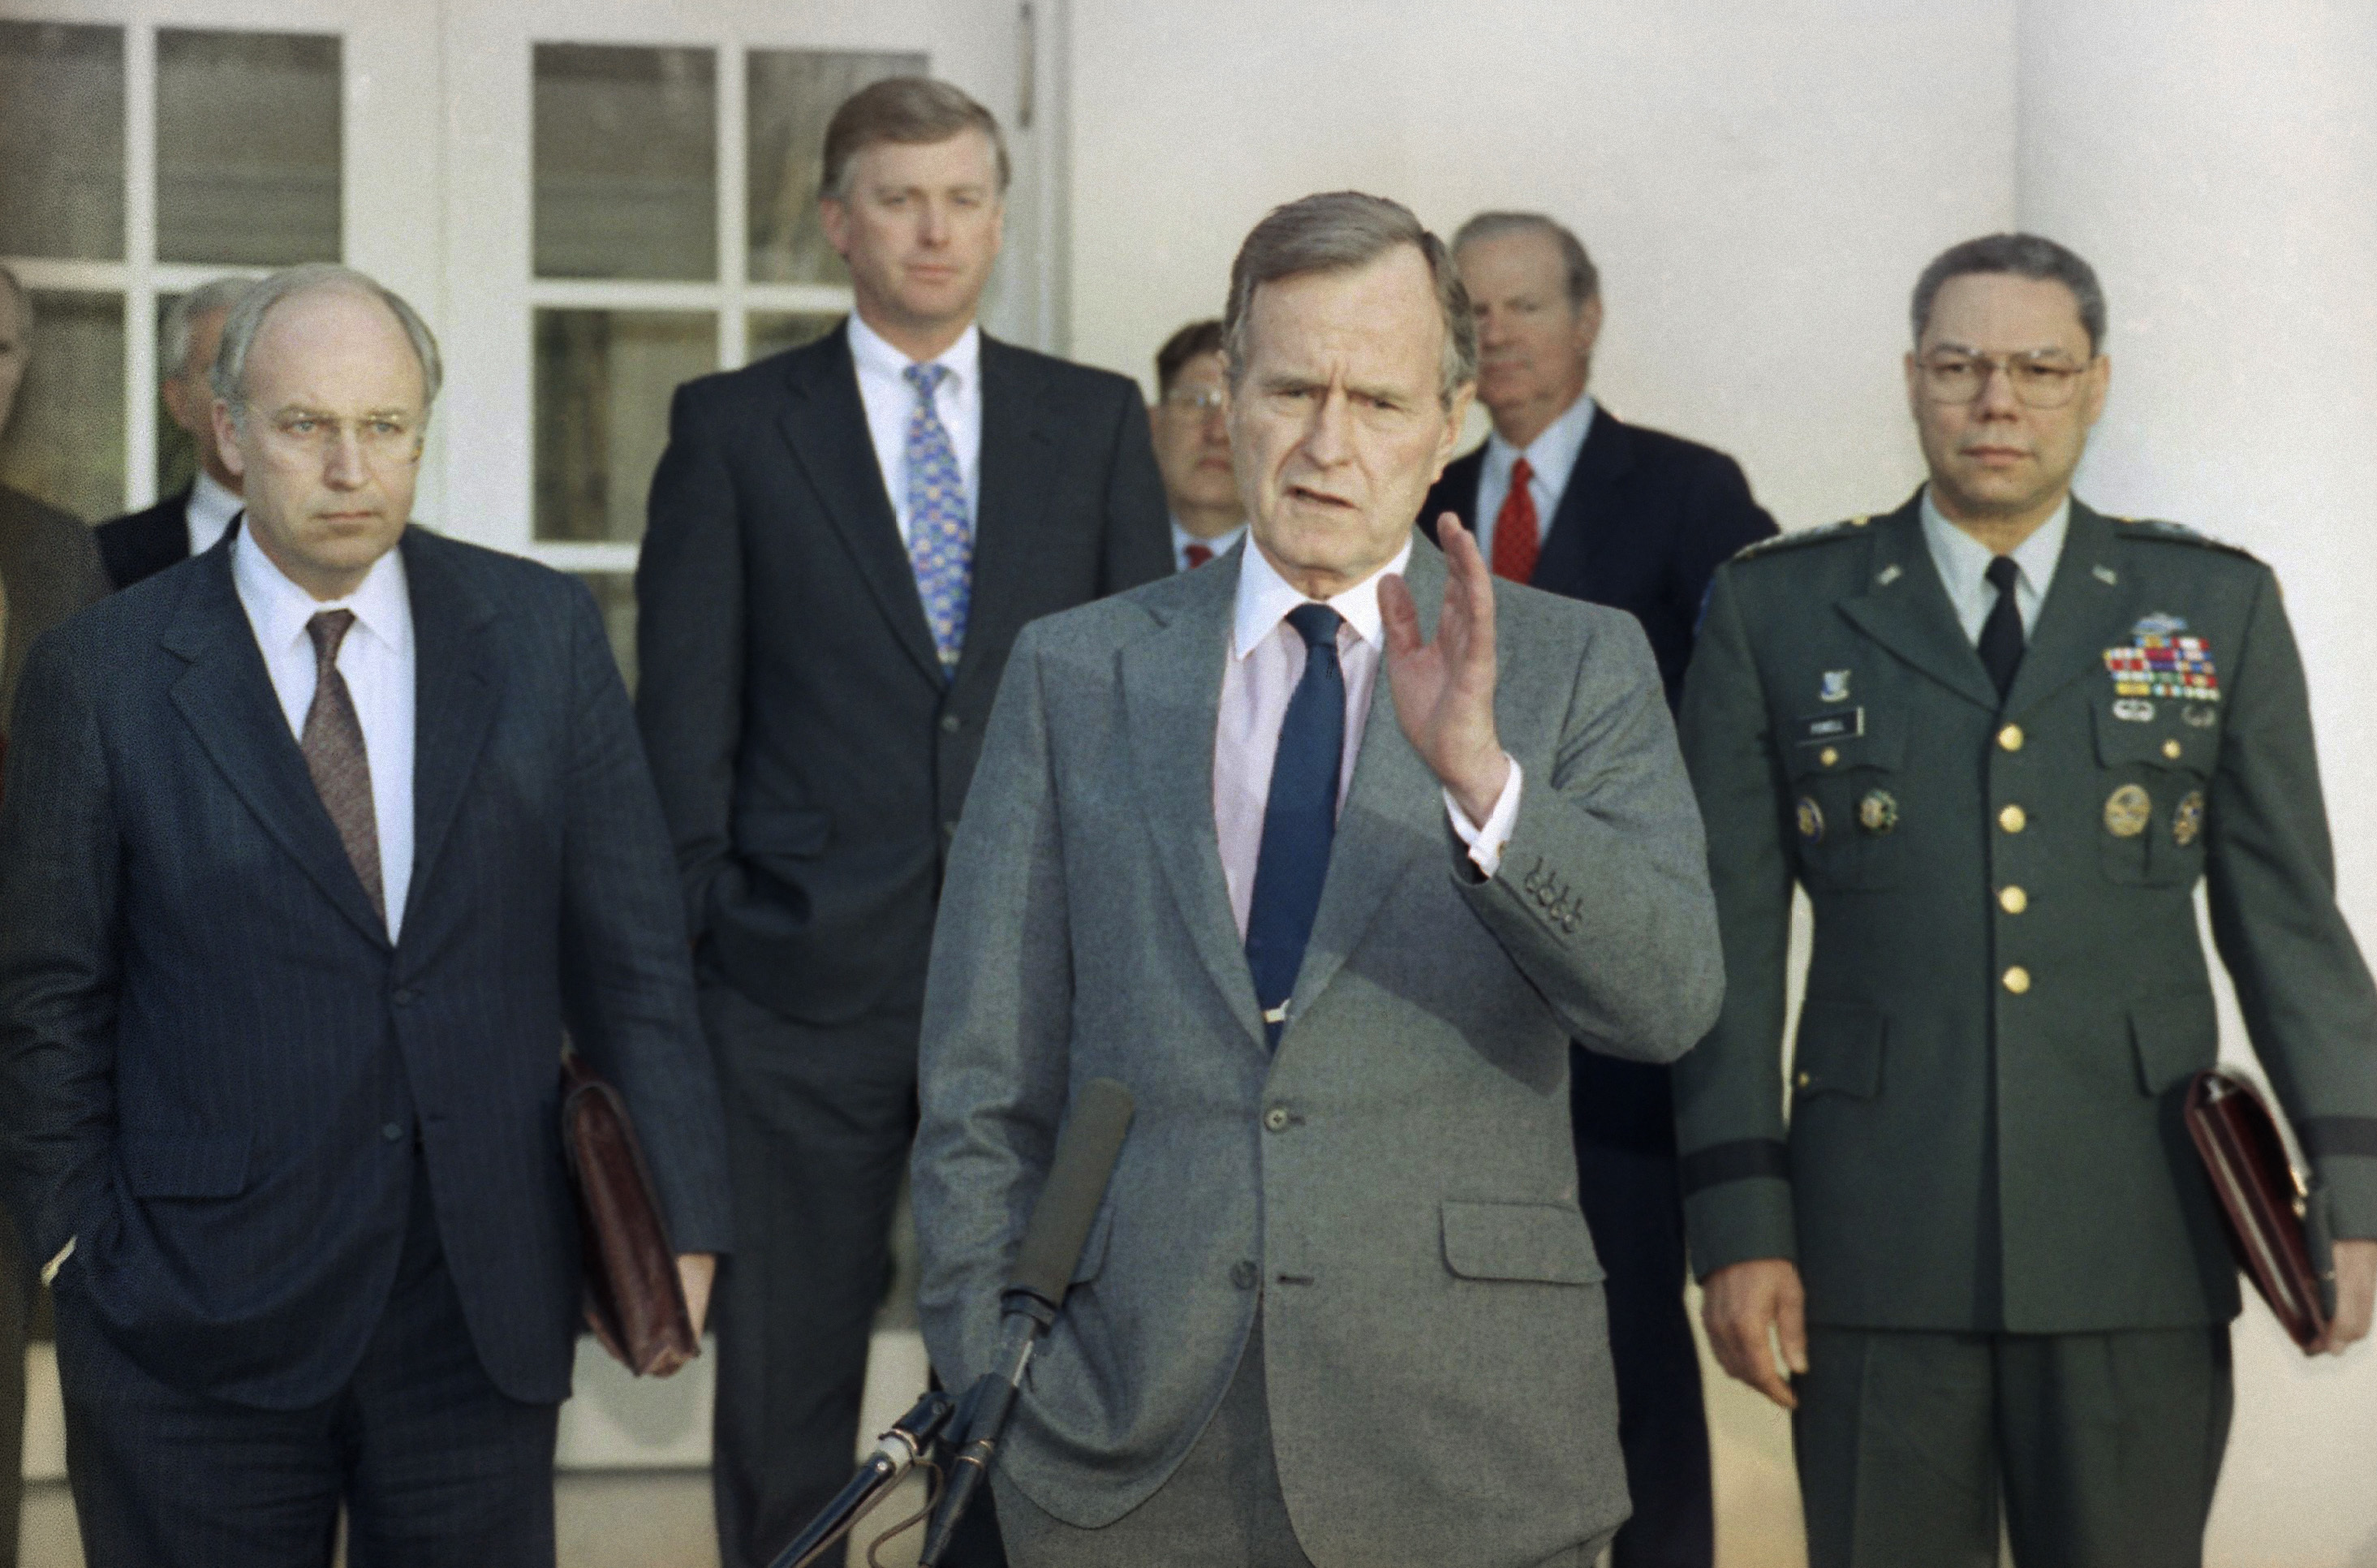 In this Feb. 11, 1991, photo, President George H.W. Bush talks to reporters in the Rose Garden of the White House after meeting with top military advisors to discuss the Persian Gulf War. From left are, Defense Secretary Dick Cheney, Vice President Dan Quayle, White House Chief of Staff John Sununu, the president, Secretary of State James A. Baker III, and Joint Chiefs Chairman Gen. Colin Powell. (AP Photo/Ron Edmonds, File)